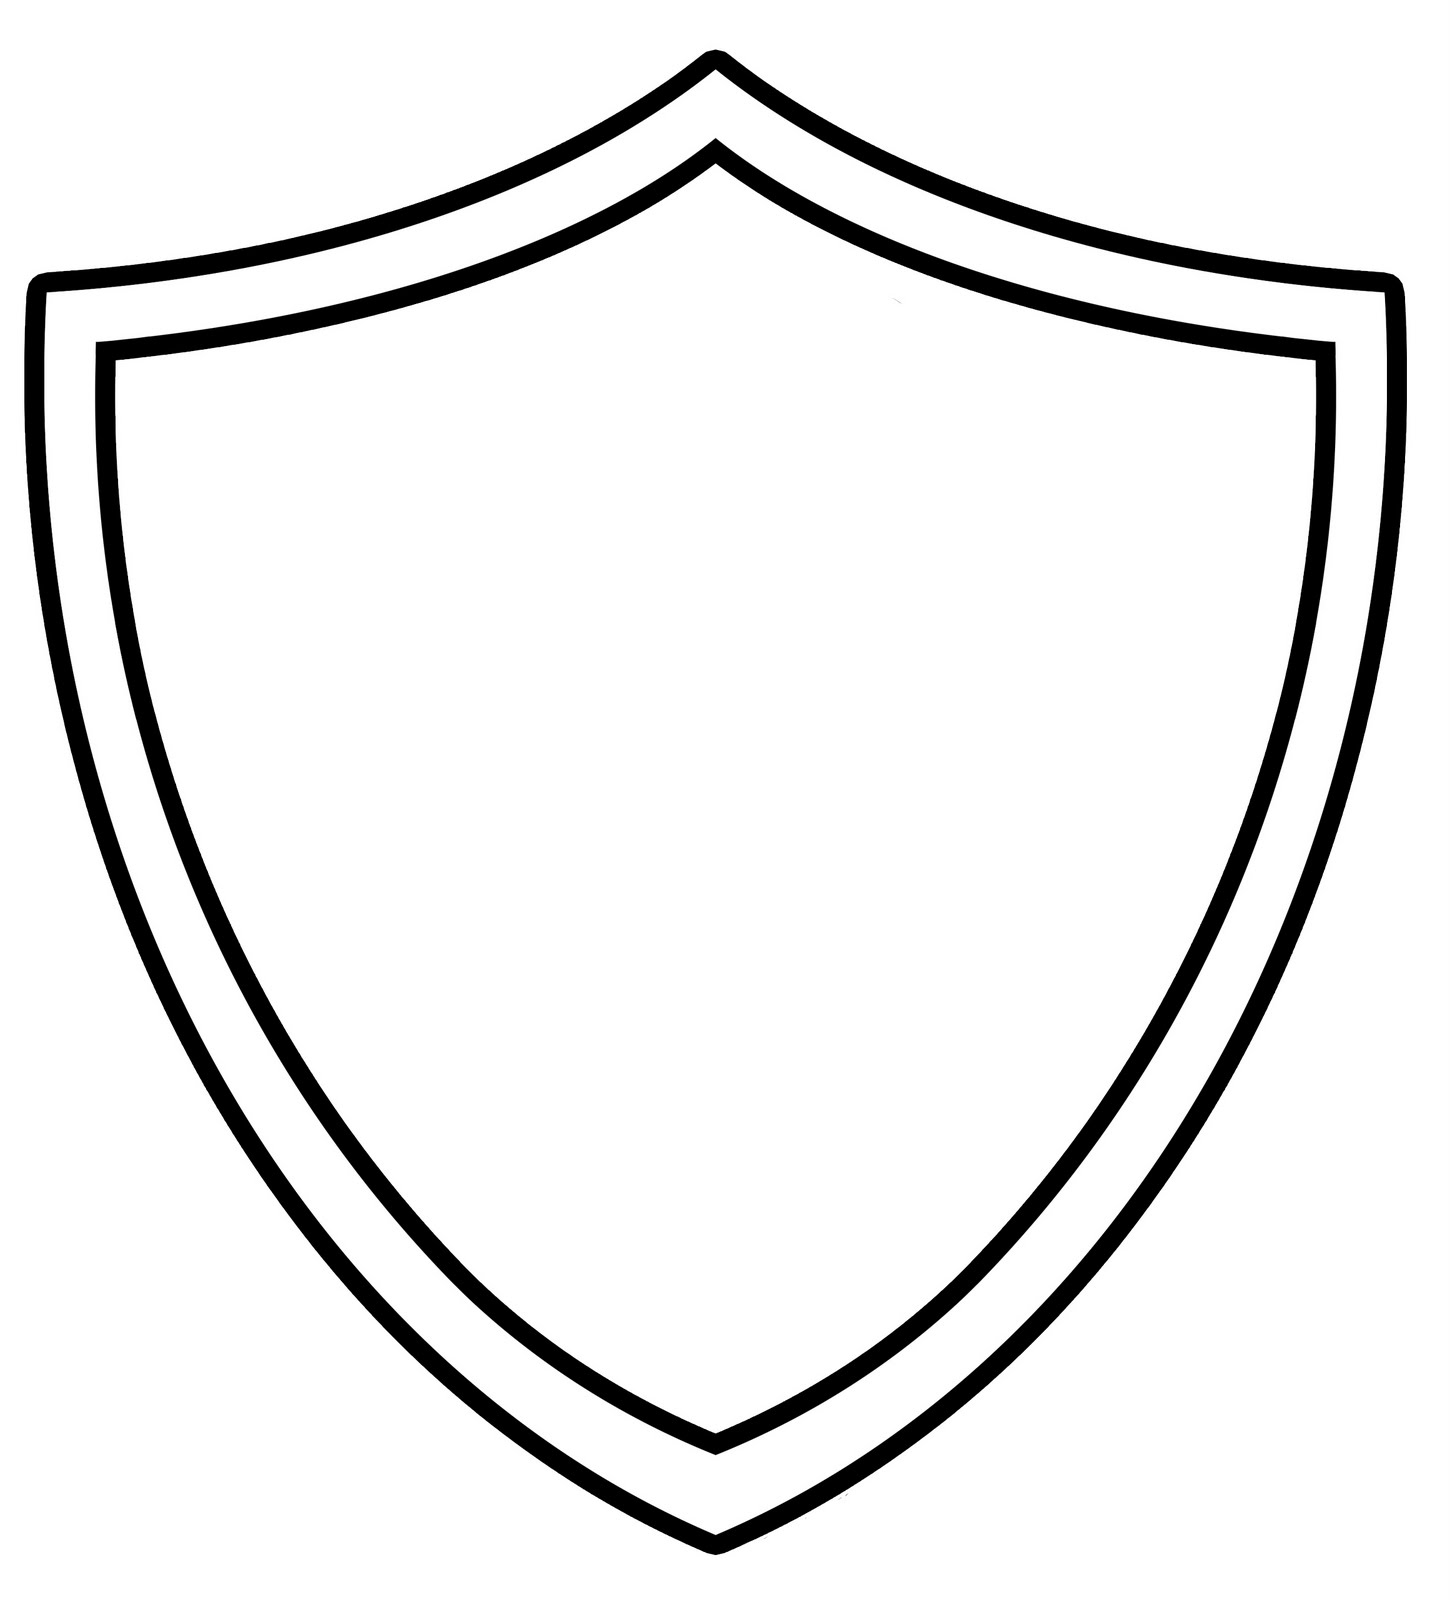 Blank family crest clipart best for Blank shield template printable